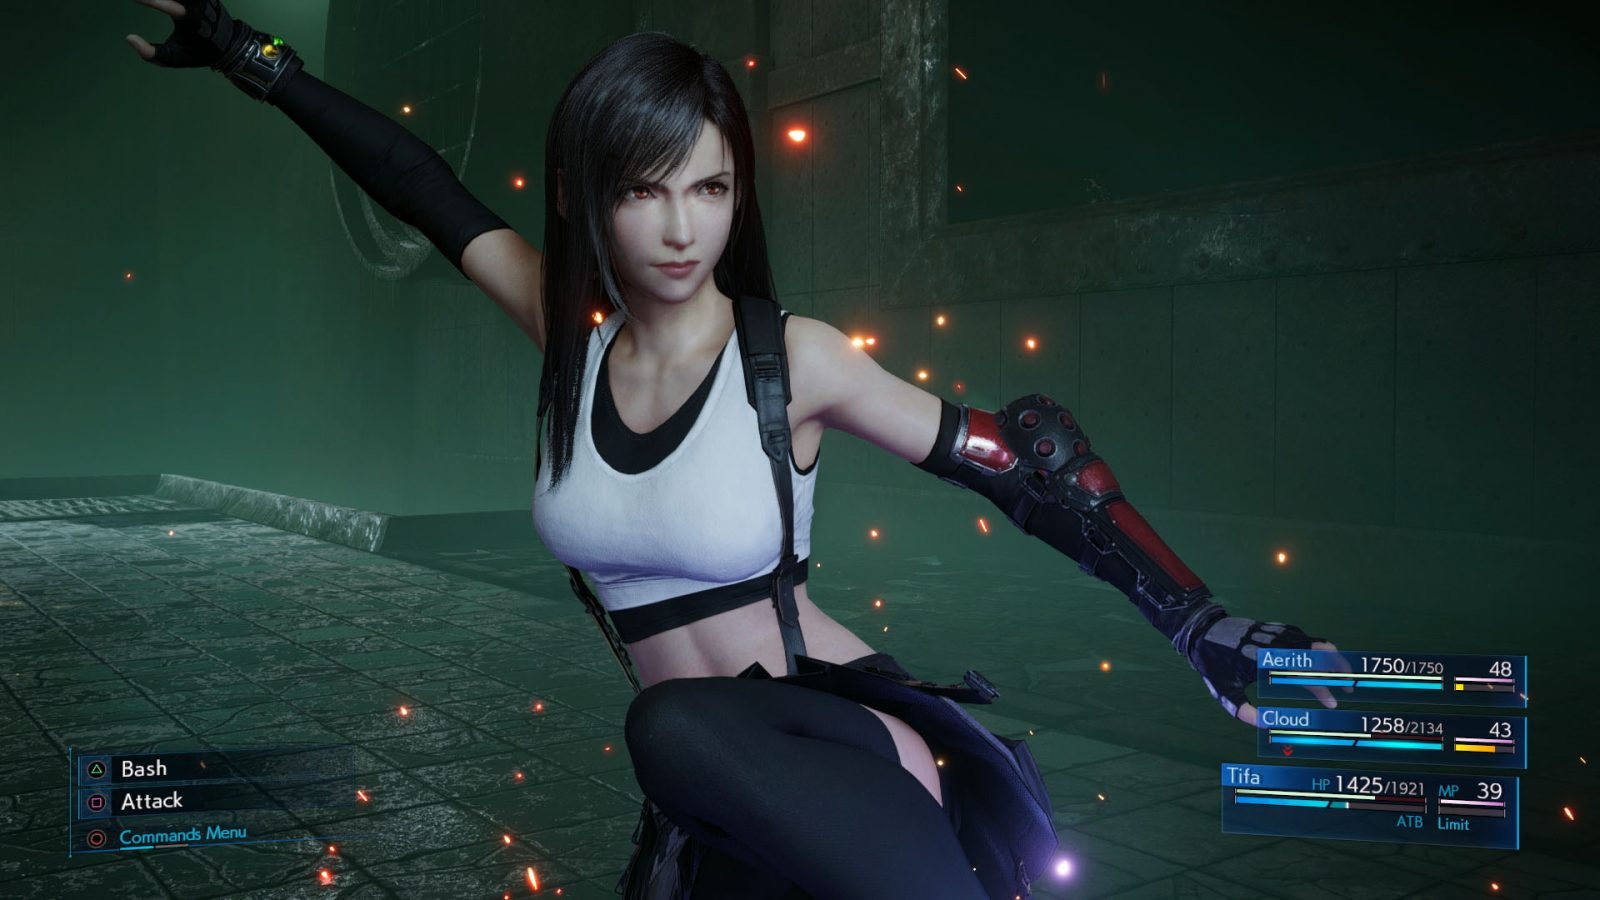 Final Fantasy VII Remake Studio is Developing a New IP Action Game for HD Consoles